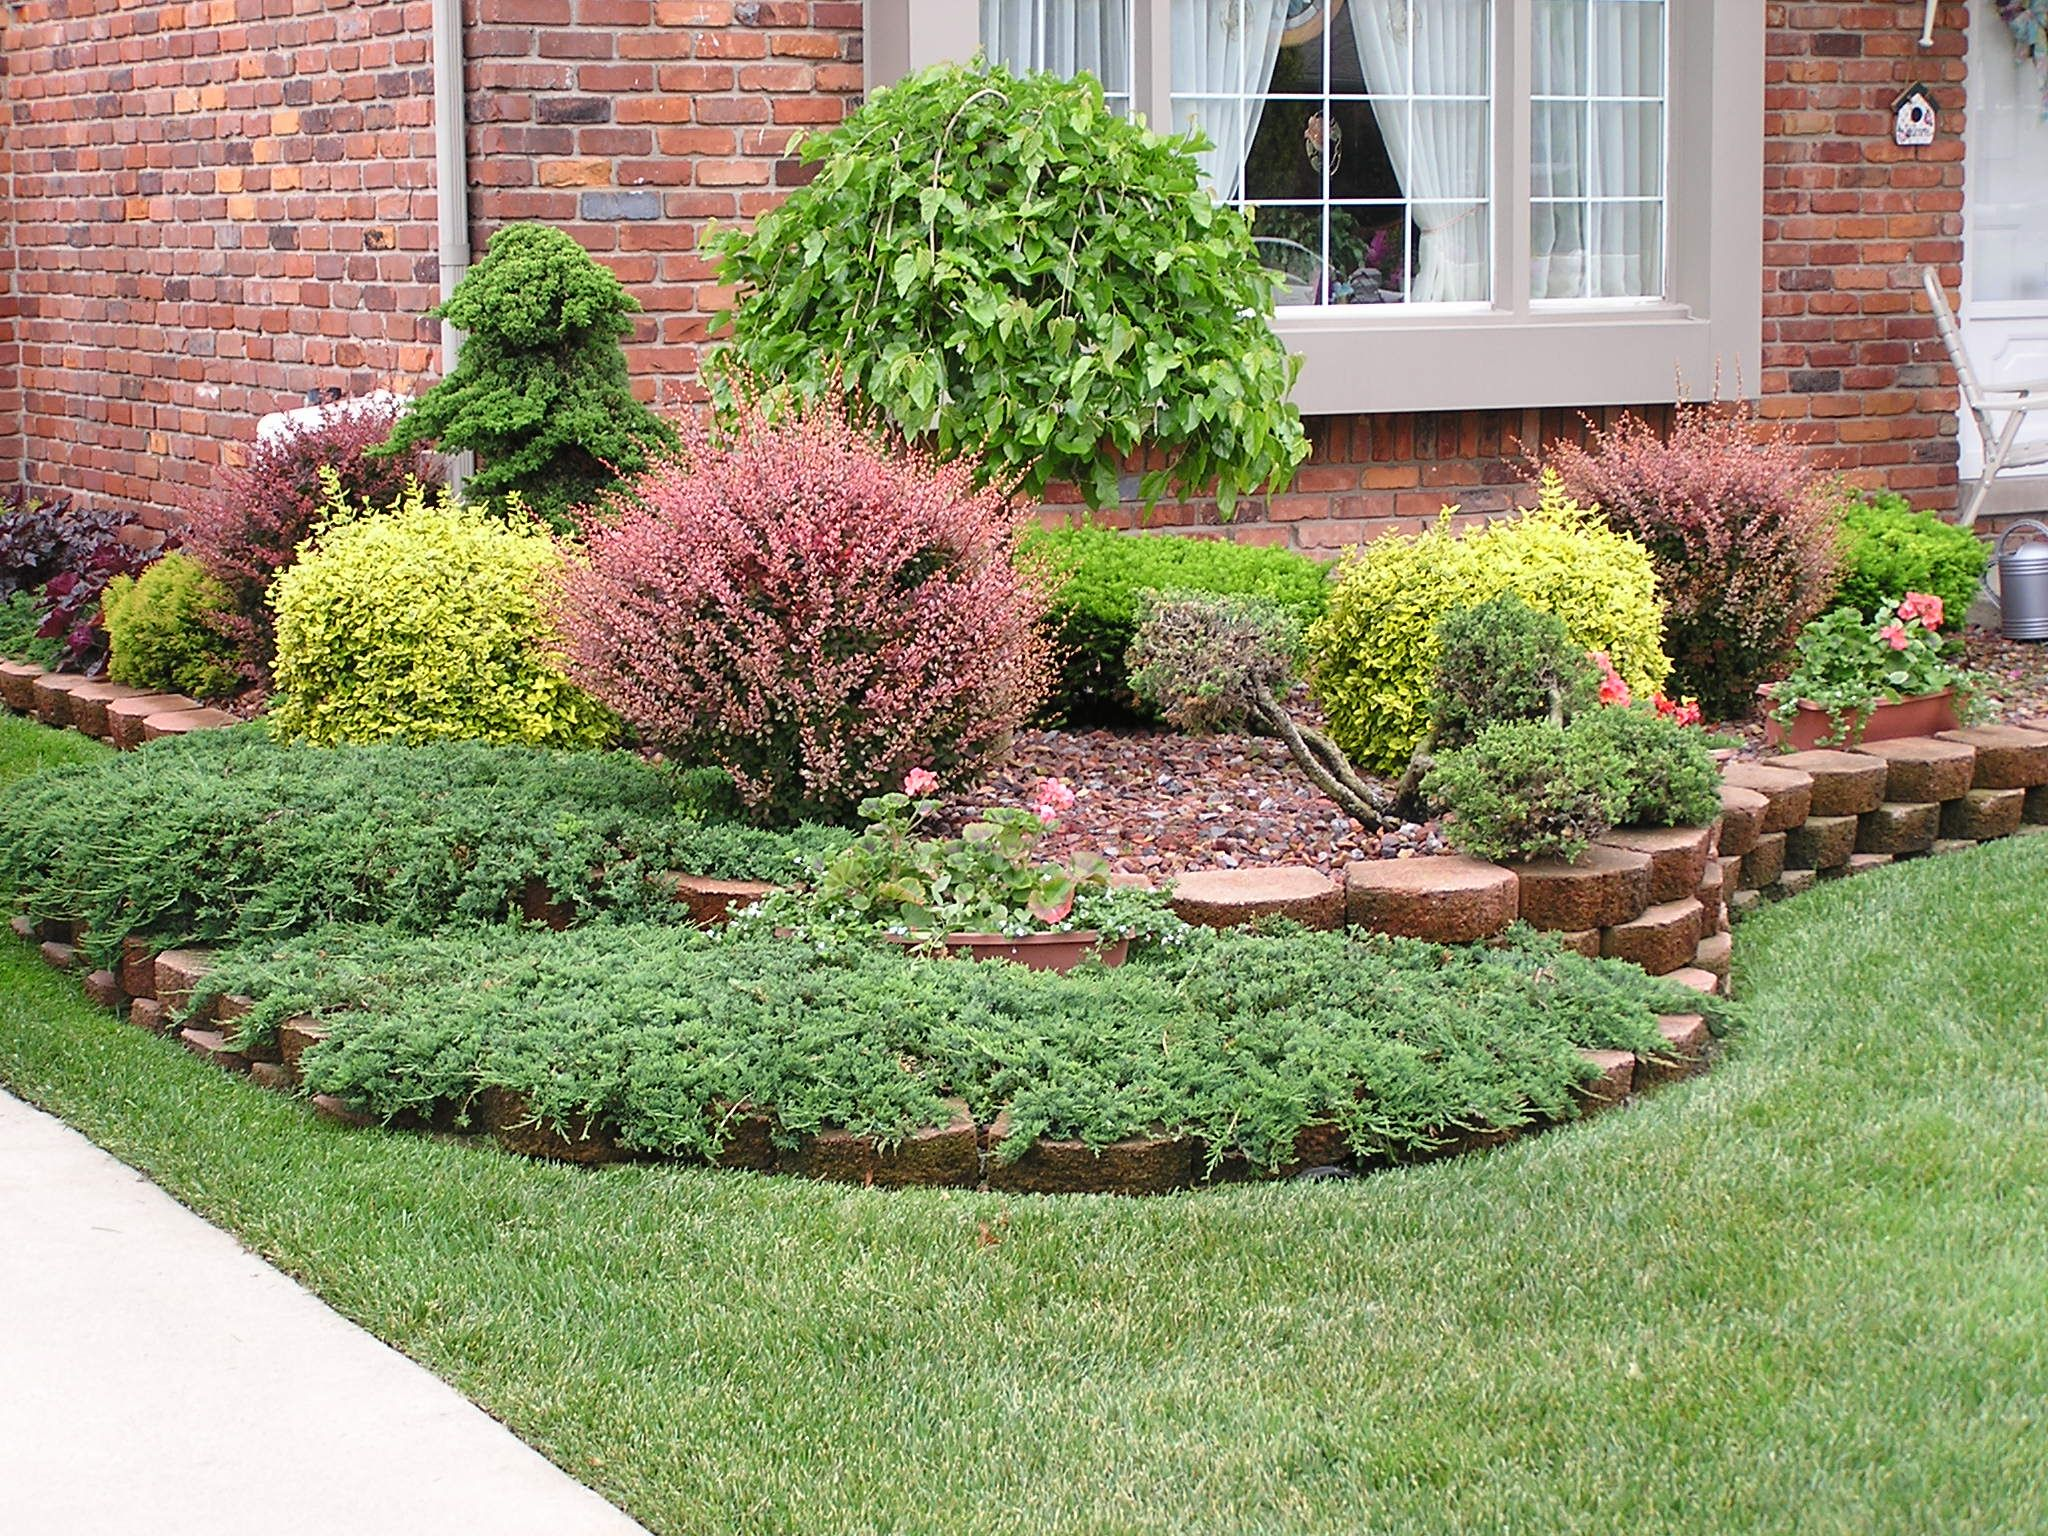 Landscaping Design Ideas For Front Of House Front Yard Landscaping